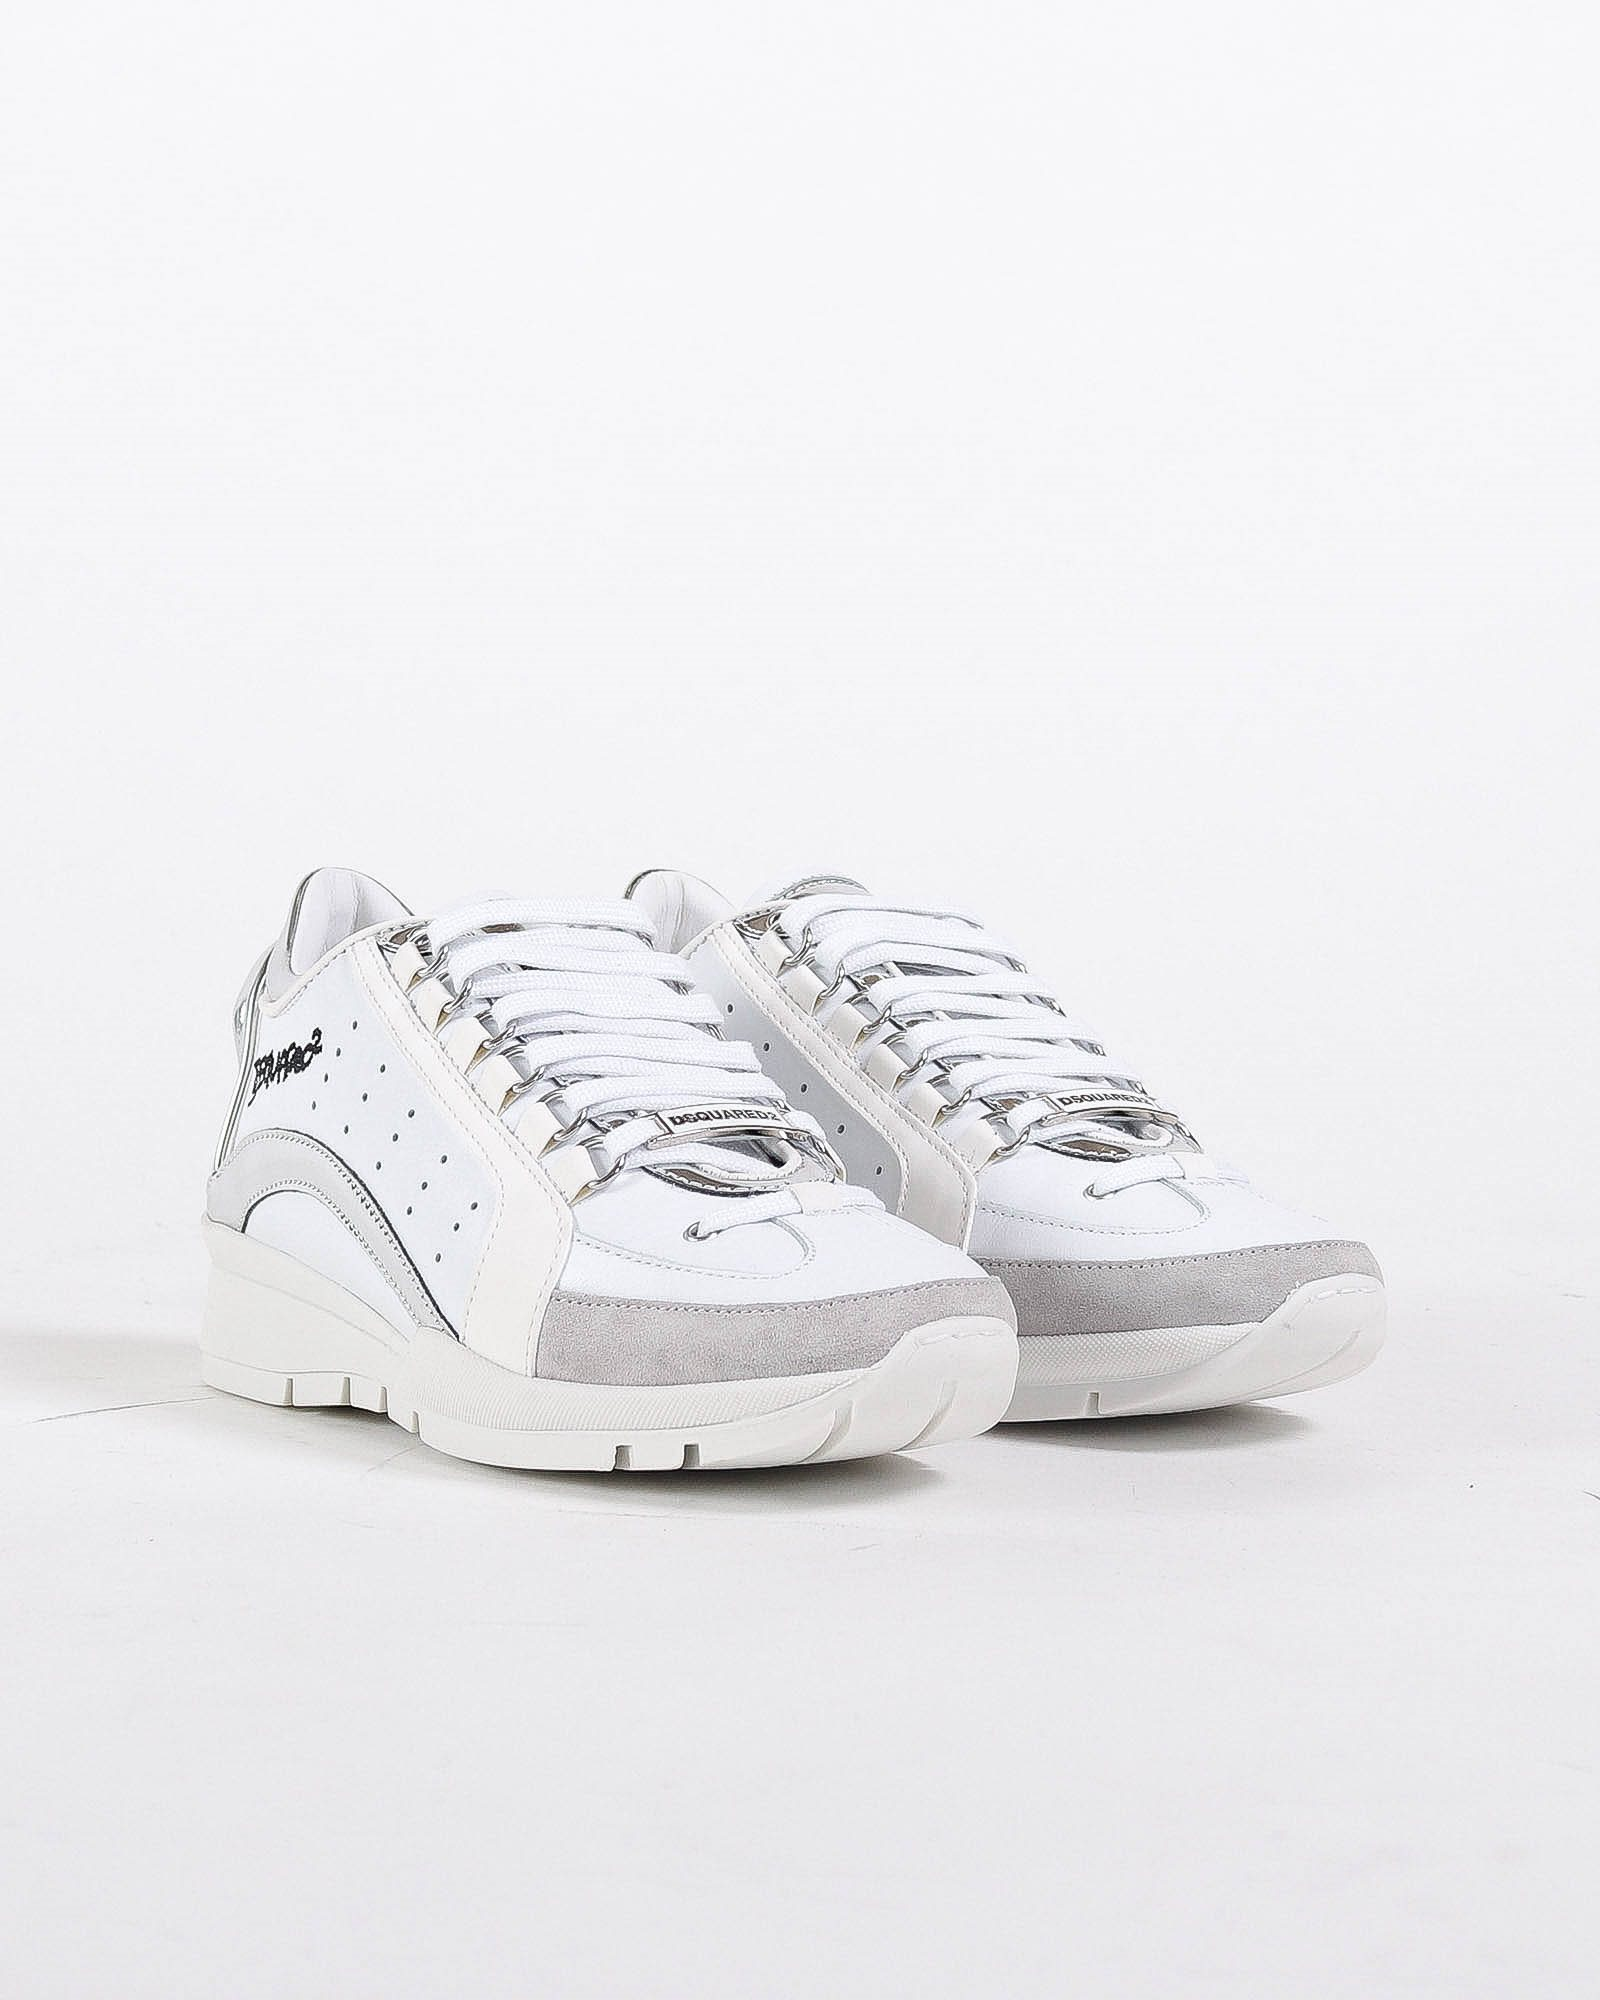 DSQUARED2 White sneaker with silver